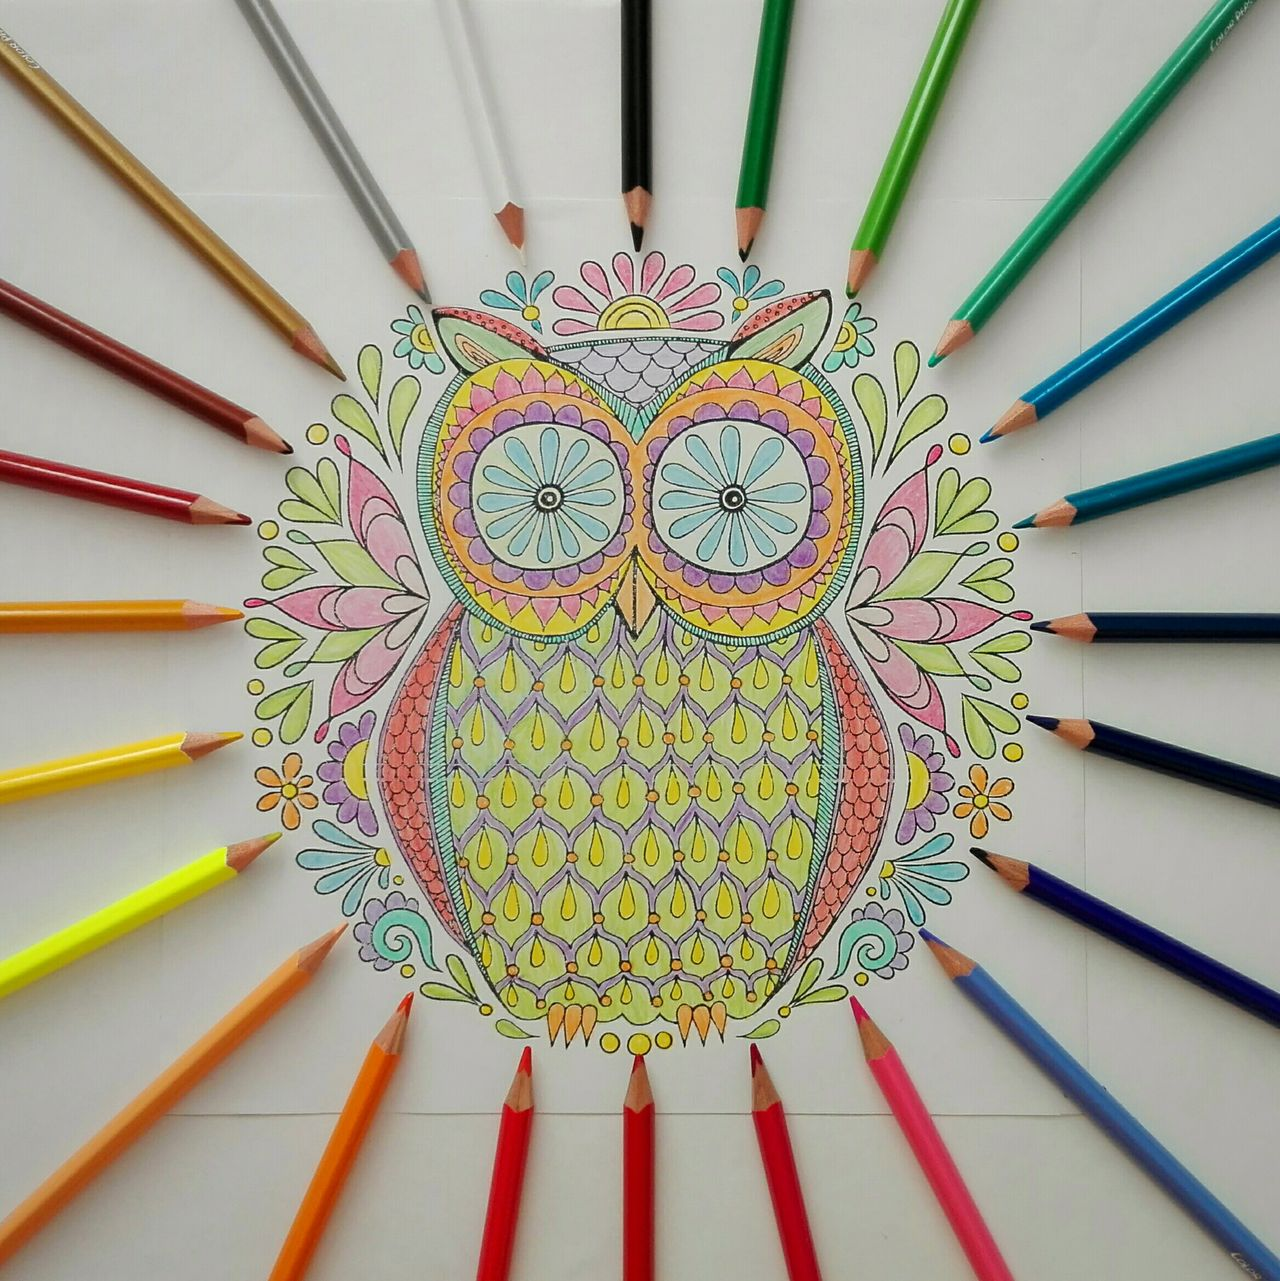 Coloring my life. The Color Of School Colour Of Life Colors Colorsplash Color Explosion Coloring Colored Colorful Colorful Life Colored Pencil Adult Coloring Book Coloring Book Coloringpage Coloring Time Coloring The World Coloring Page Coloring Life Coloringforadults Coloring Outside The Lines Coloring Pencils Coloringbookforadults